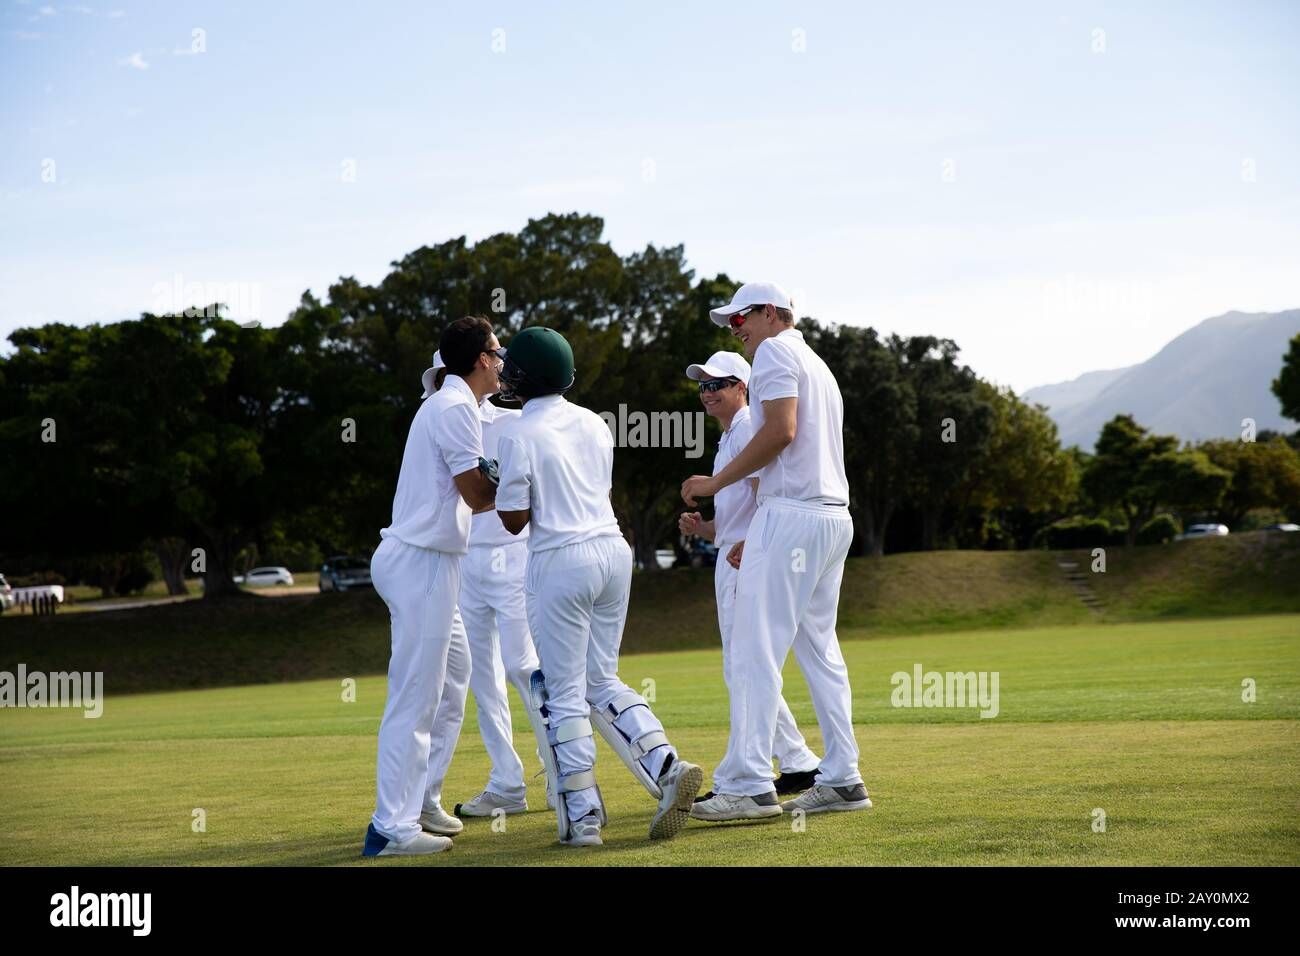 Cricket players discussing on the pitch Stock Photo